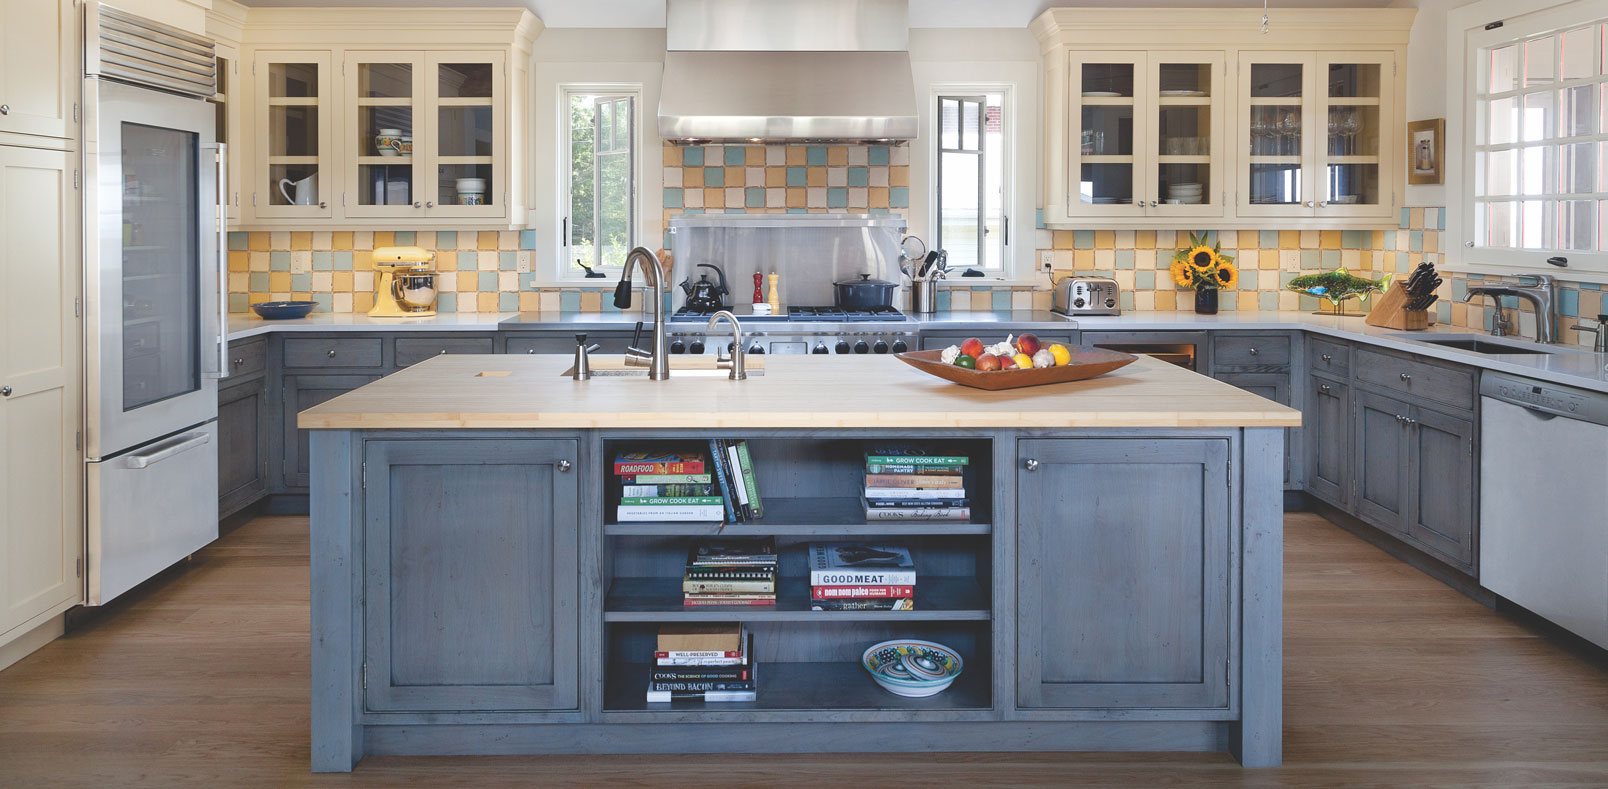 Tips that you must know about selecting kitchen cabinets 4 نکاتی که باید در مورد انتخاب کابینت آشپزخانه بدانید